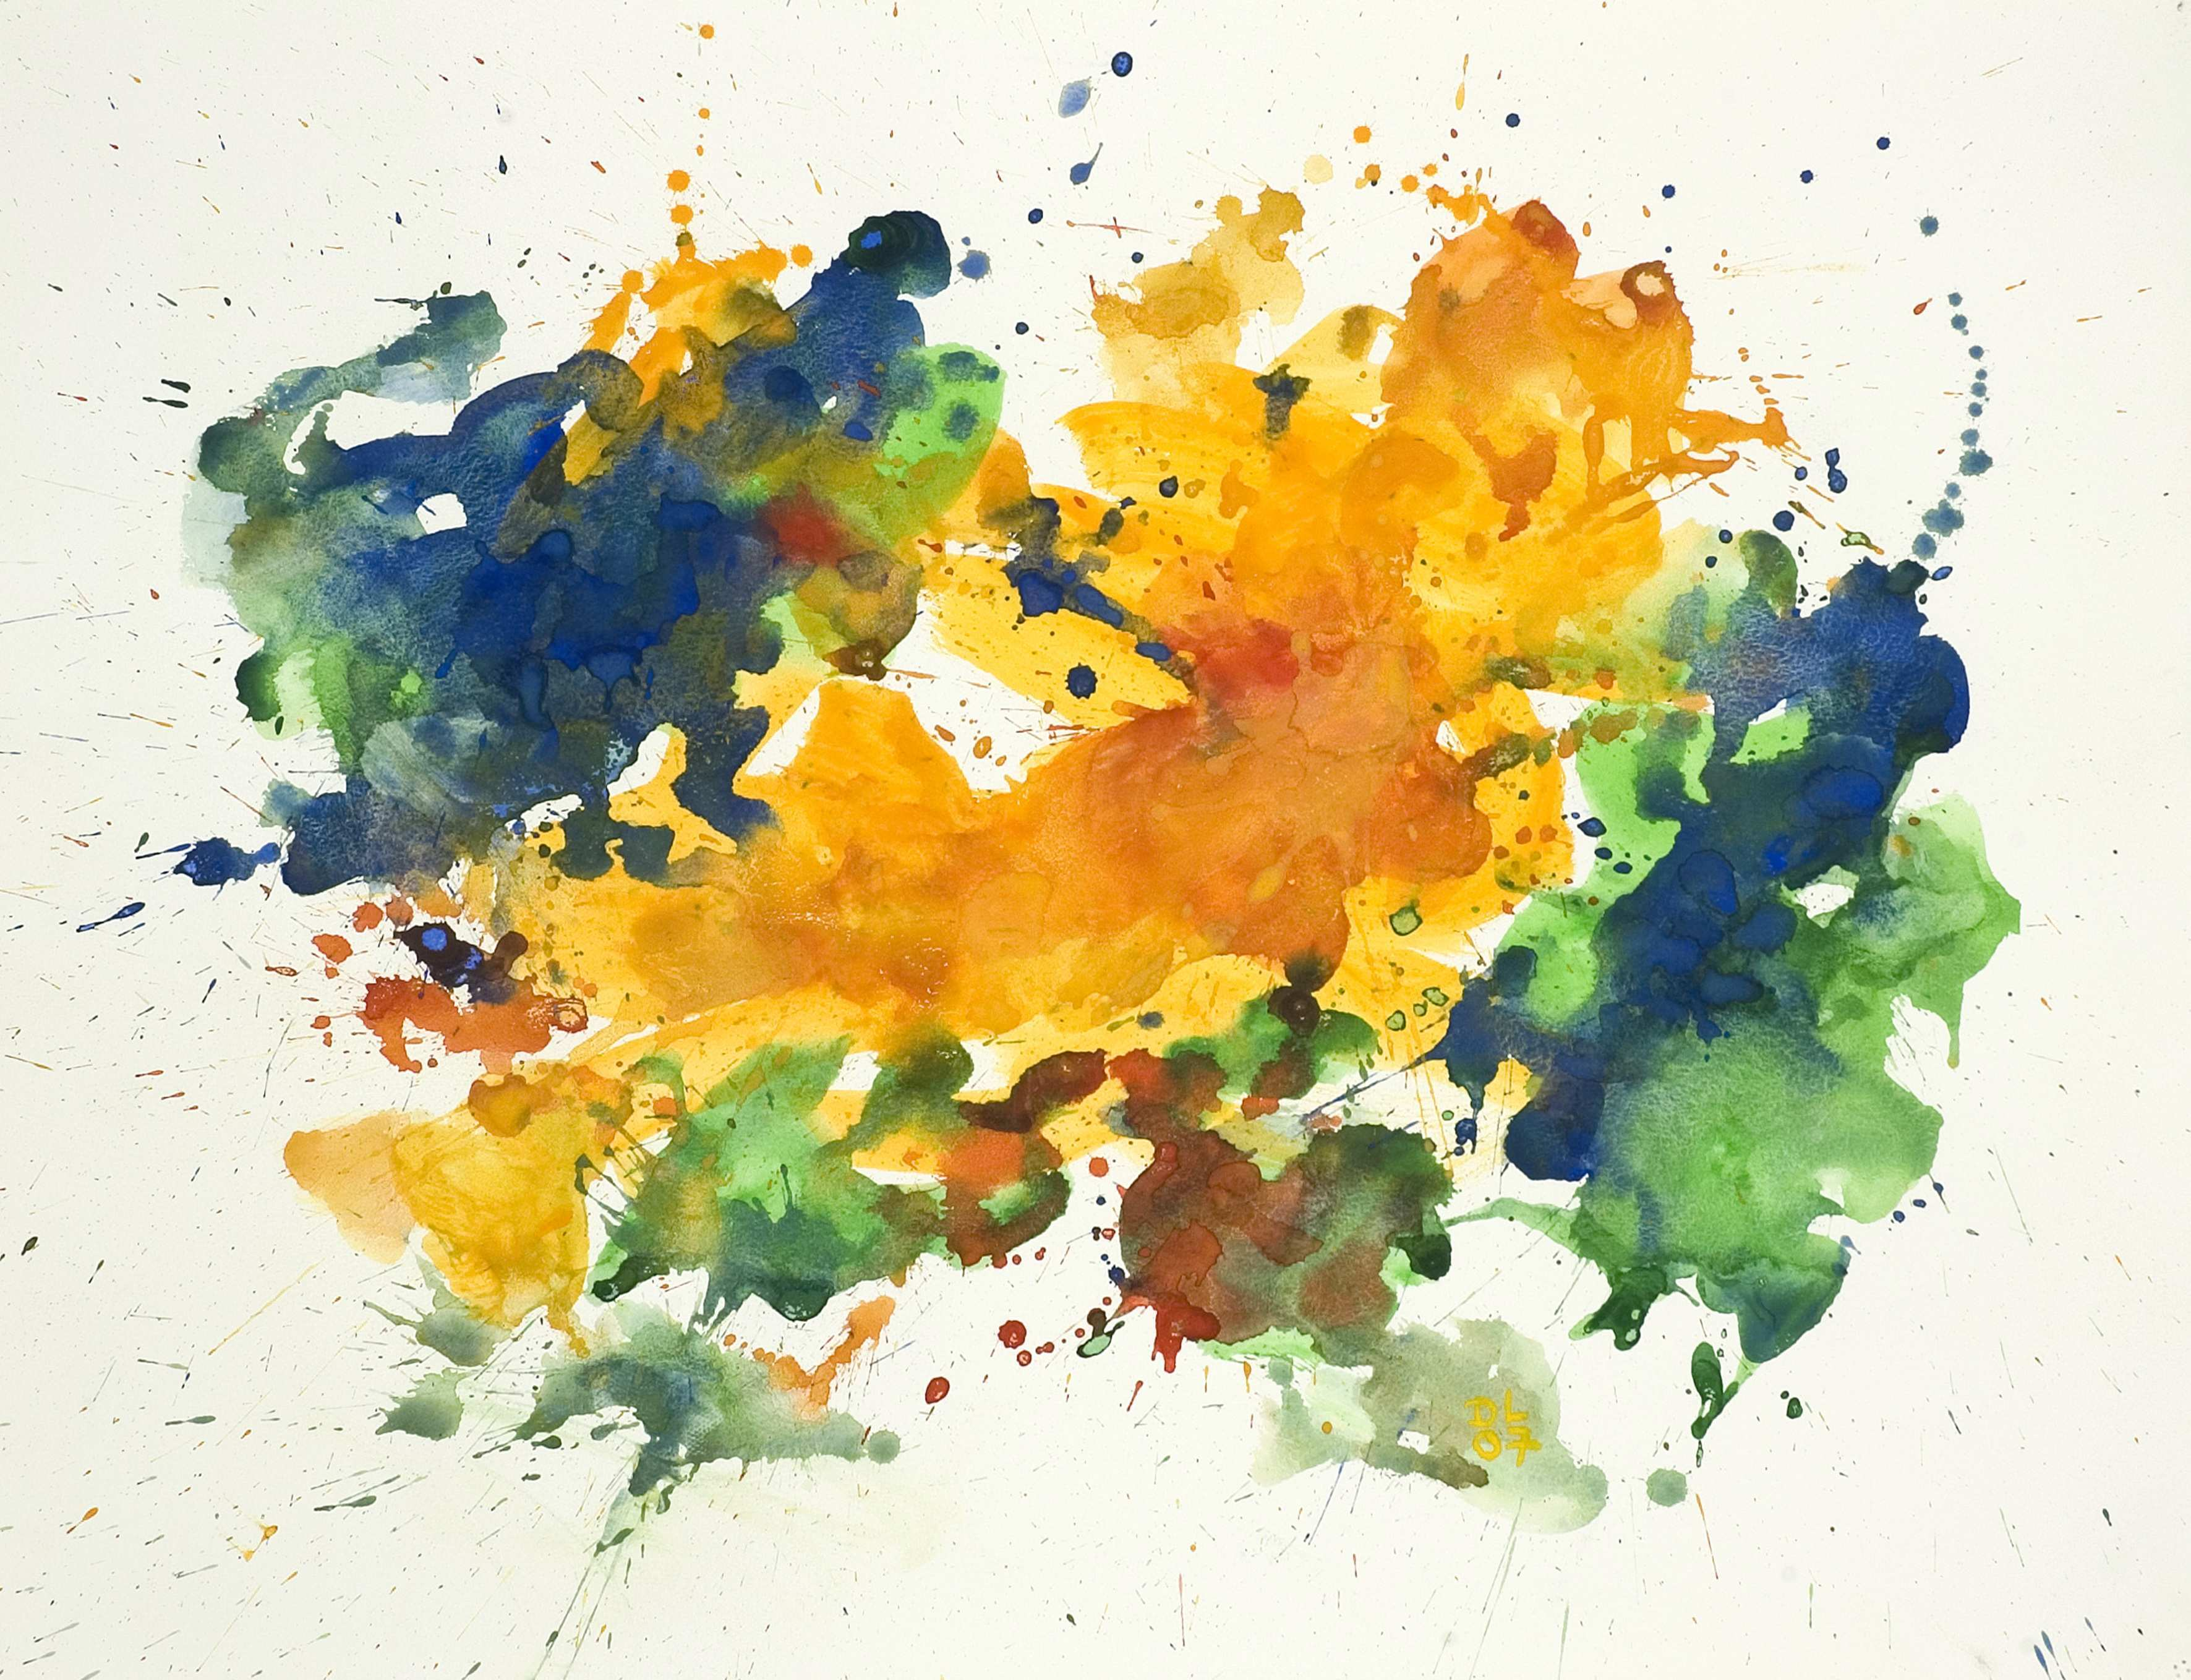 3543x2717 Abstract Watercolor Painting New Yellow Amp Green Abstract